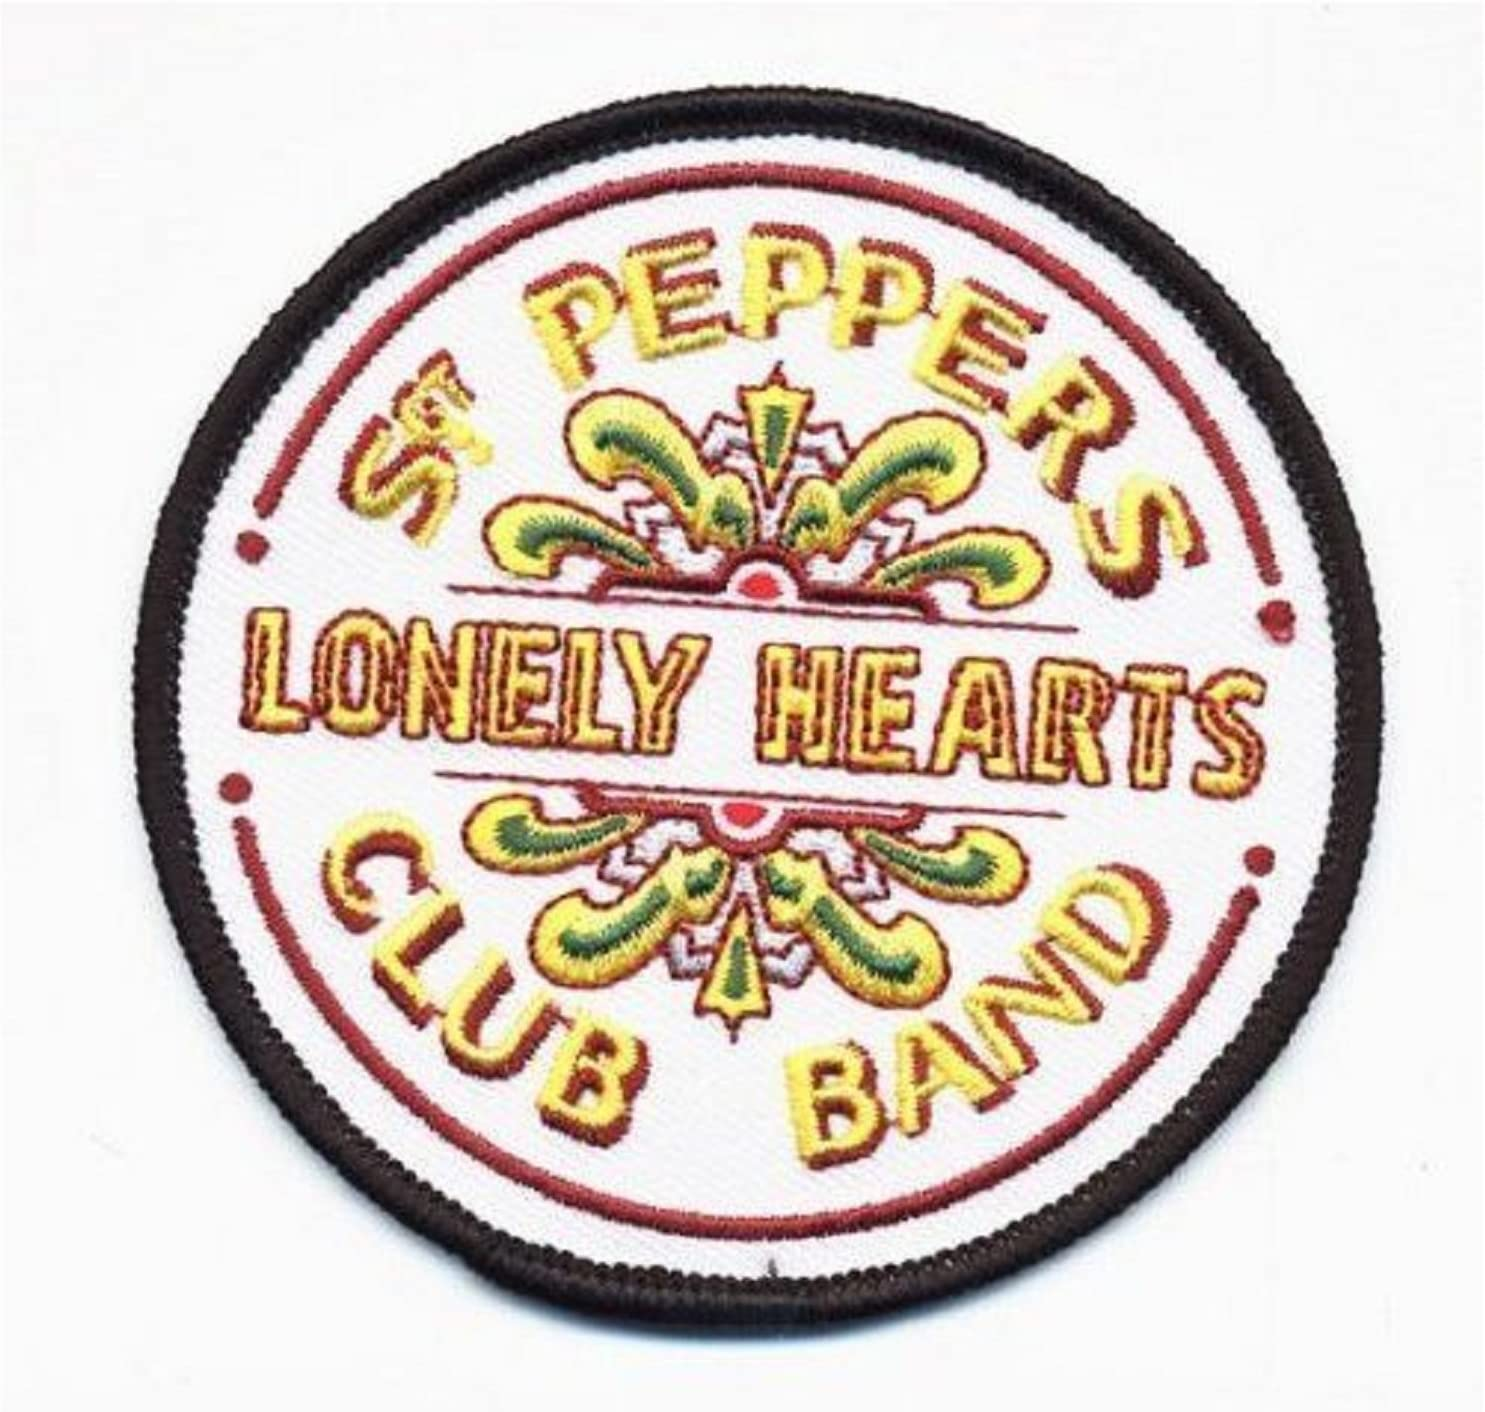 Patch Sgt Peppers Beatles in One Size